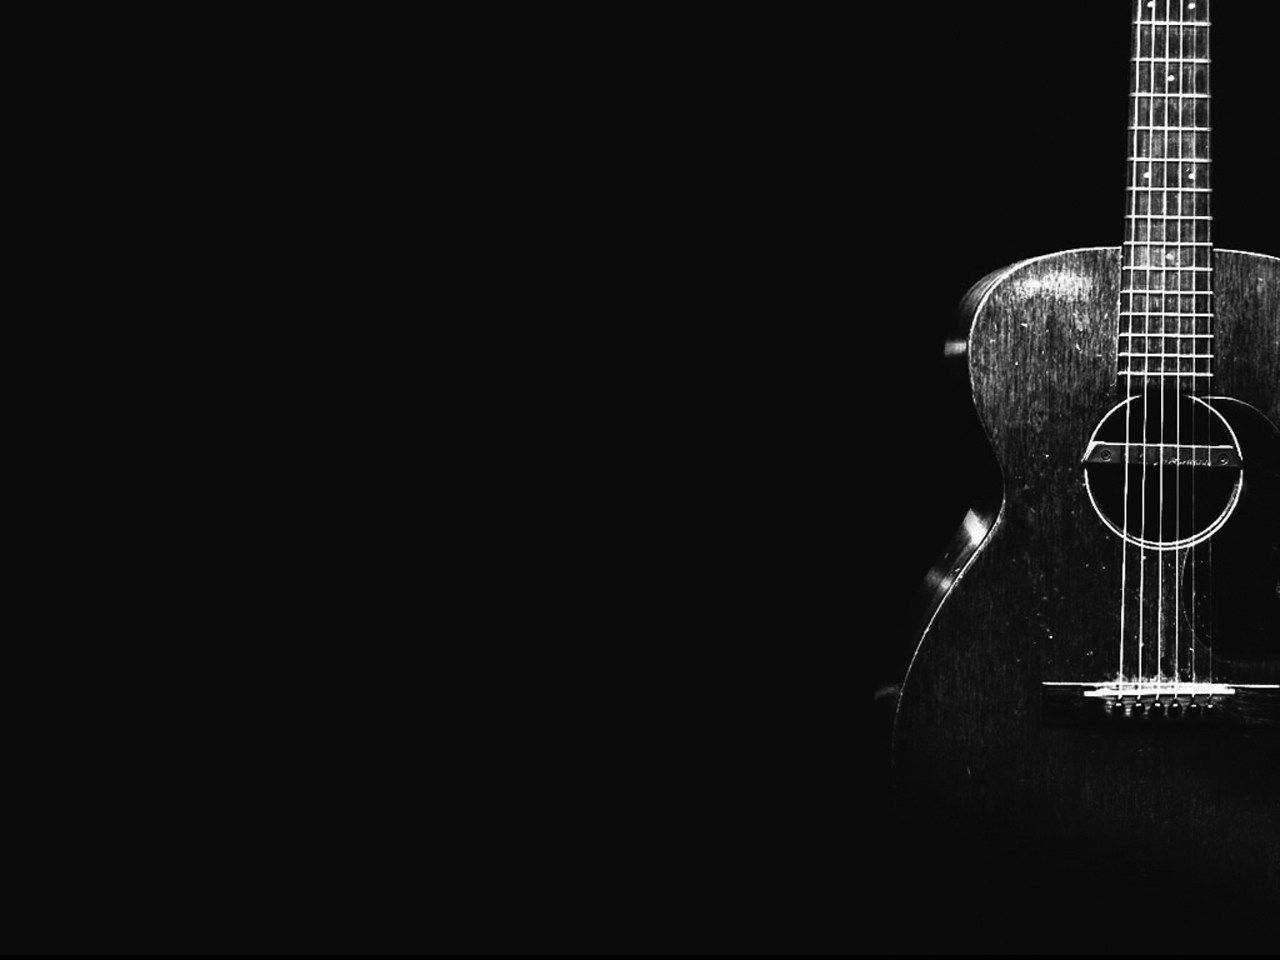 Guitar Wallpaper Black And White Google Search Black And White Google Black And White Wallpaper